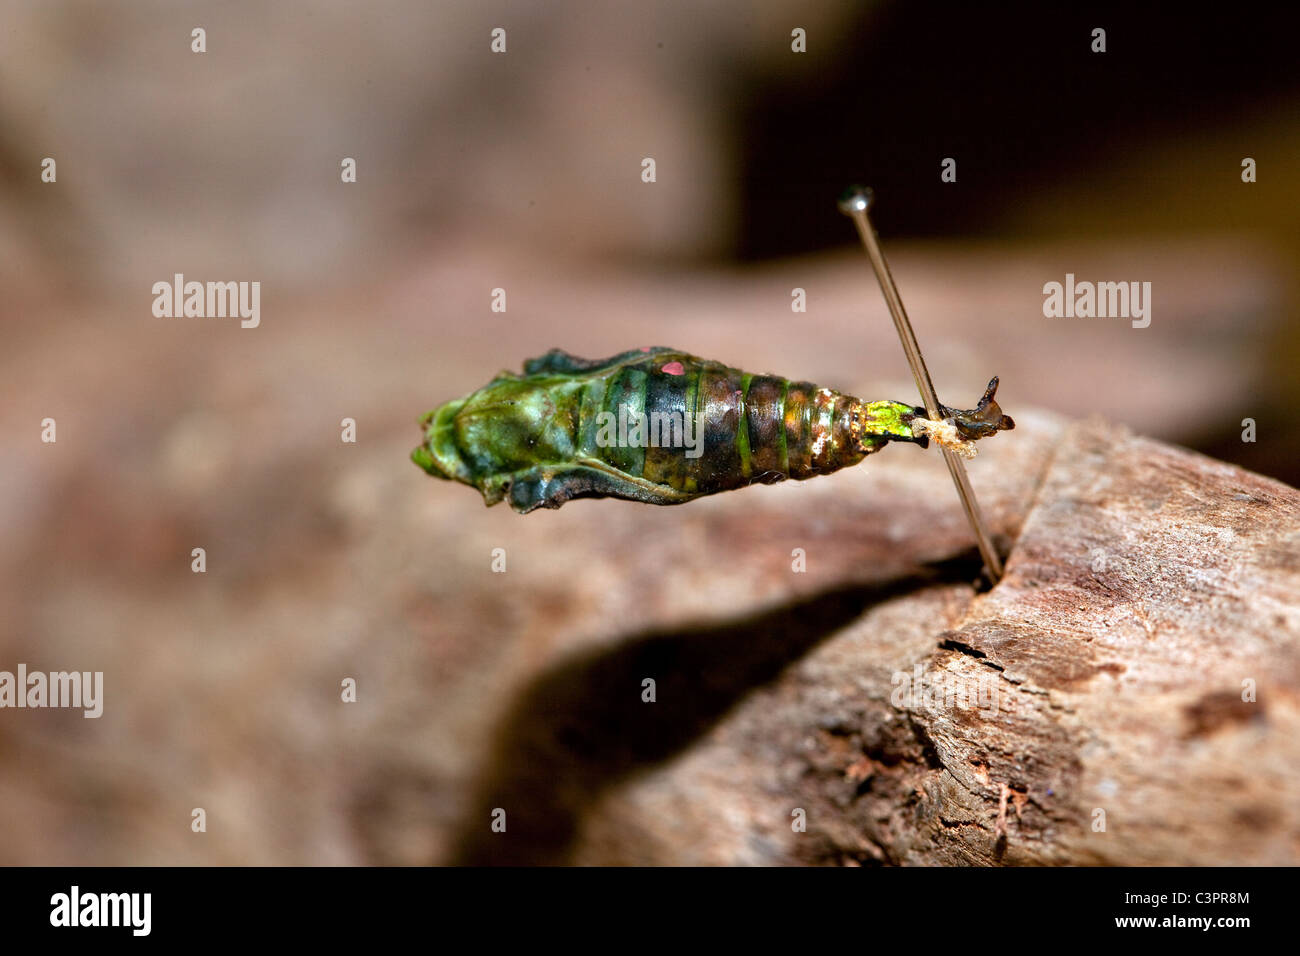 A Catonephele numilia buttefly in its chrysalis stage of development in Costa Rica. - Stock Image